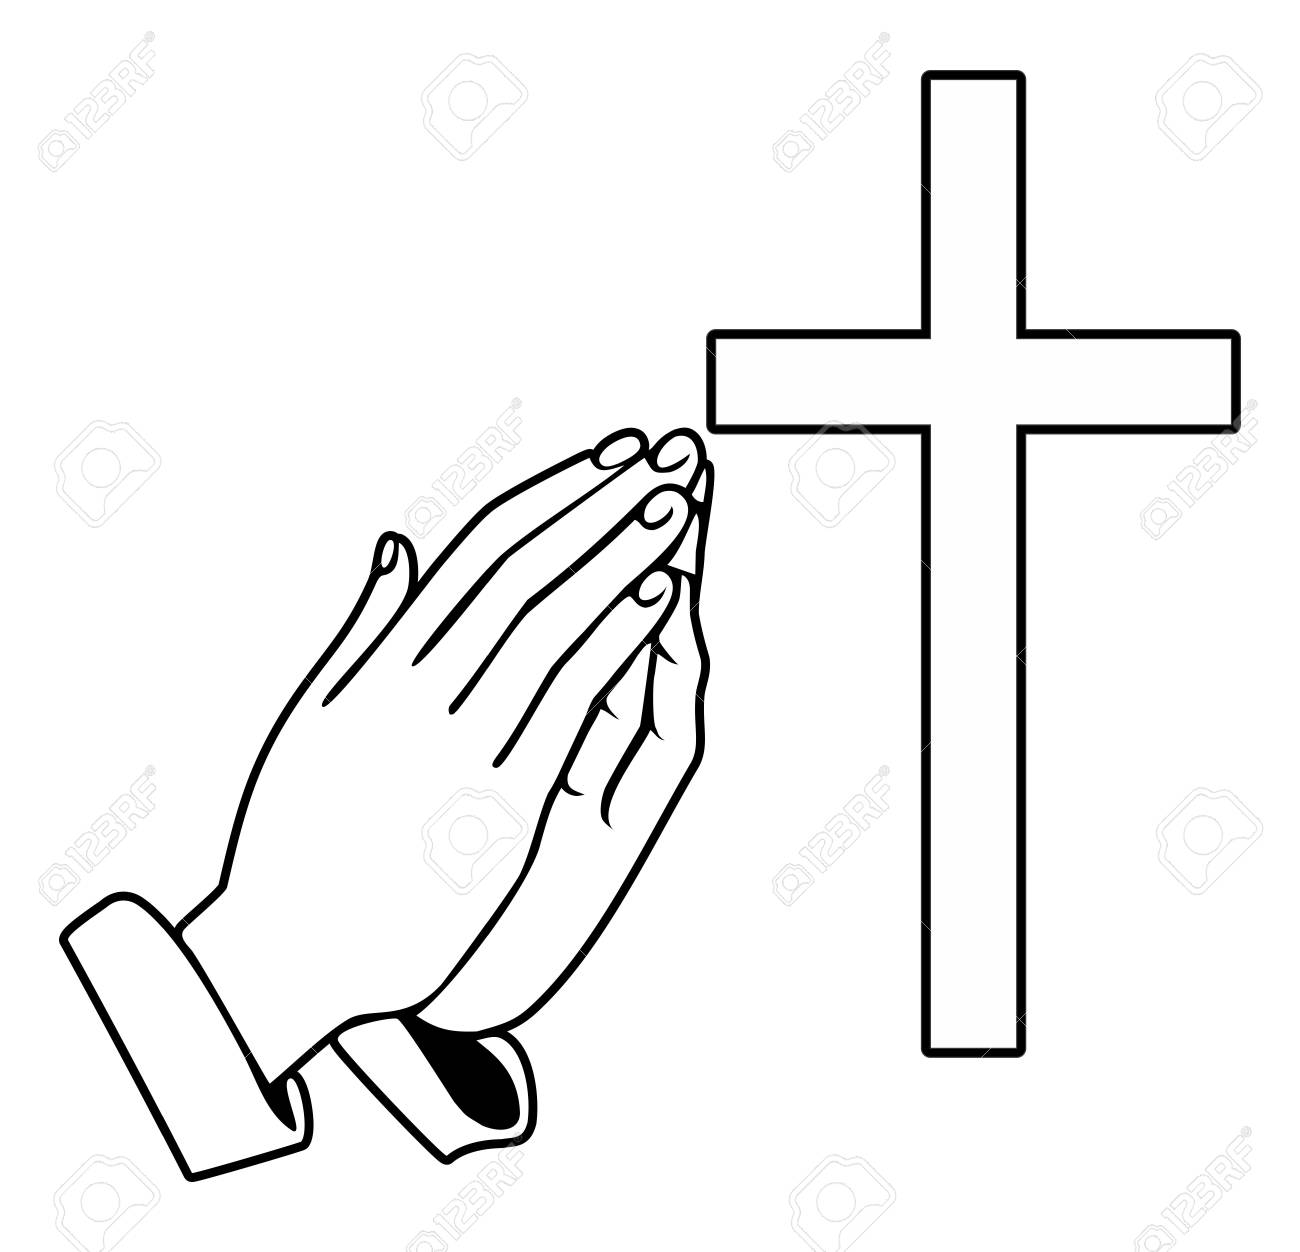 Praying Hands and orthodox cross - Vector Illustration - 87575915